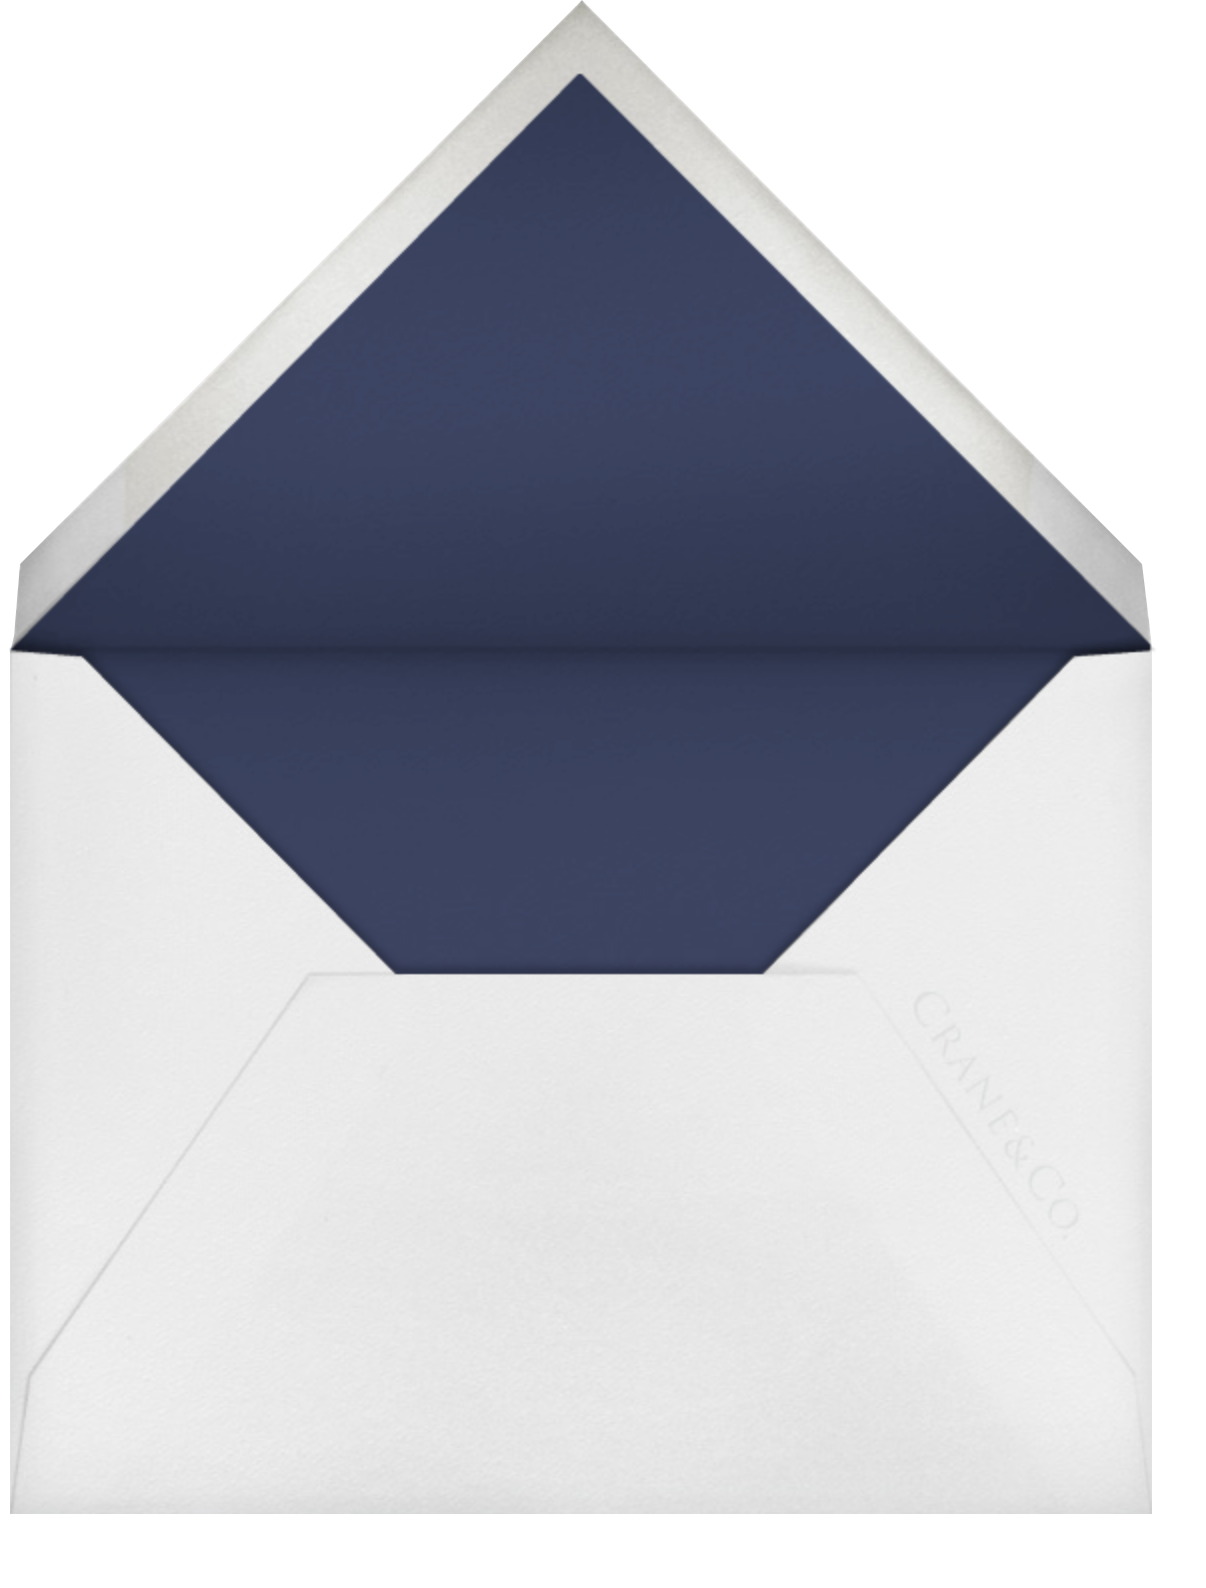 Kayitz I (Stationery) - Navy - Paperless Post - Personalized stationery - envelope back